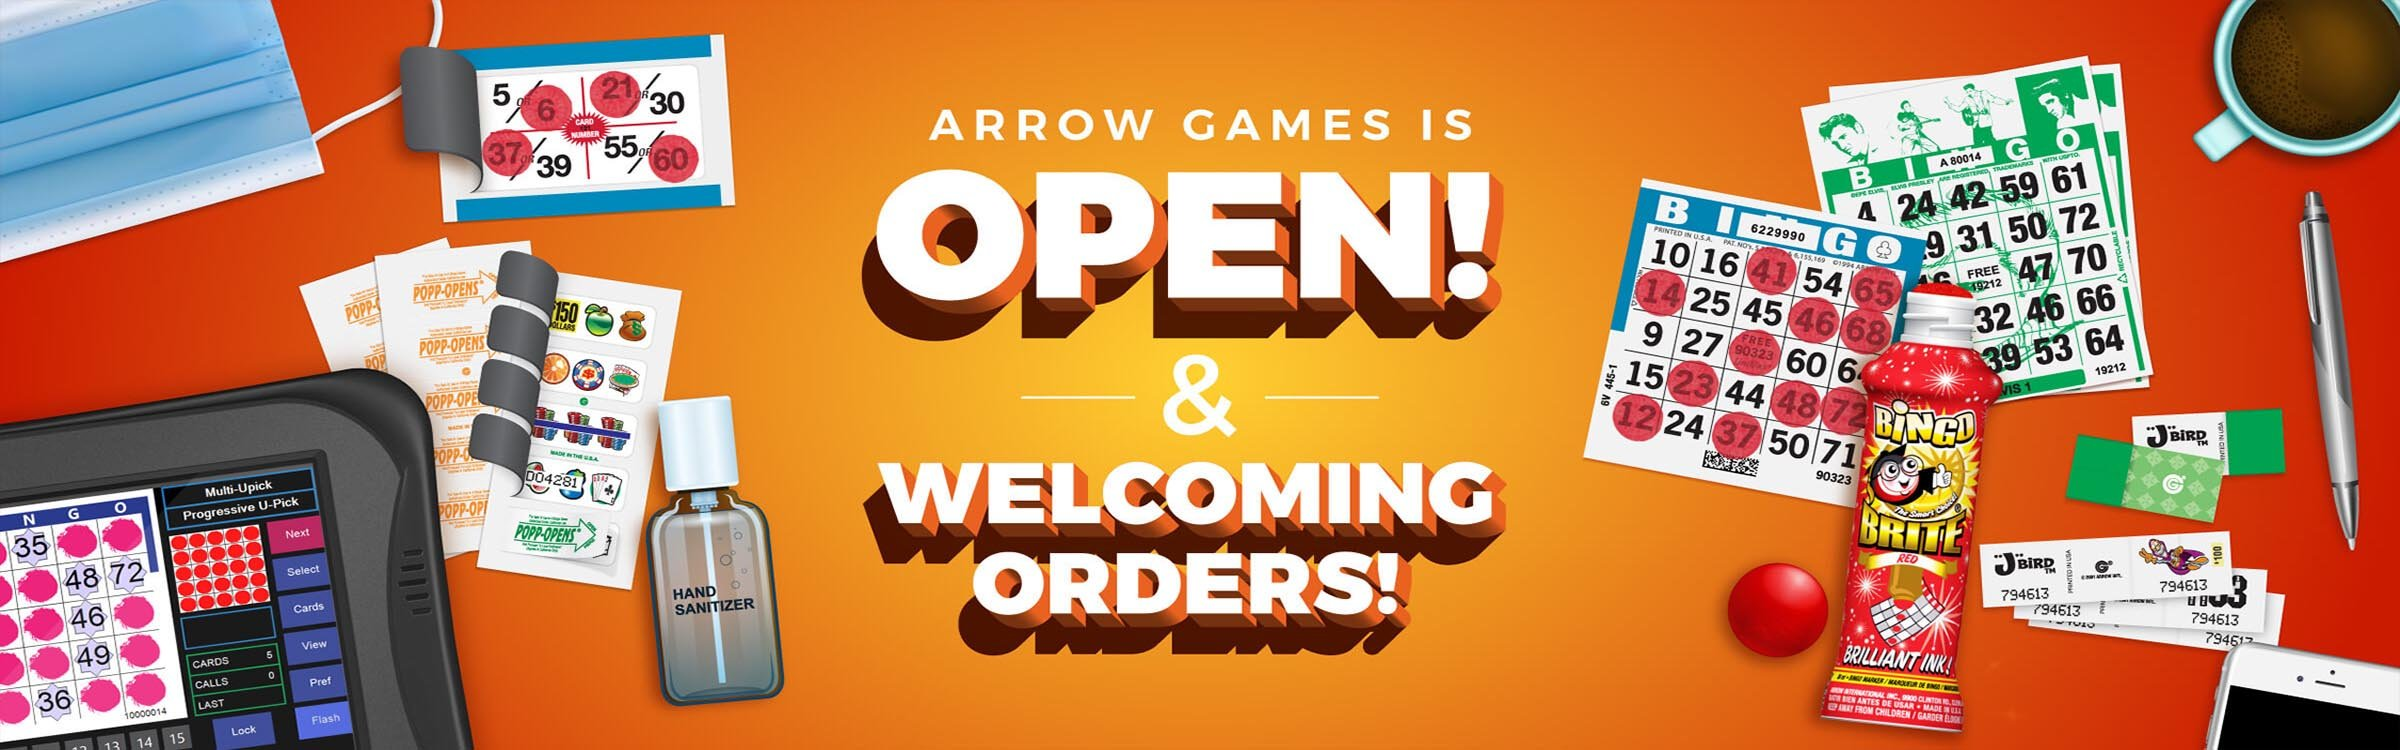 Arrow Games is Open